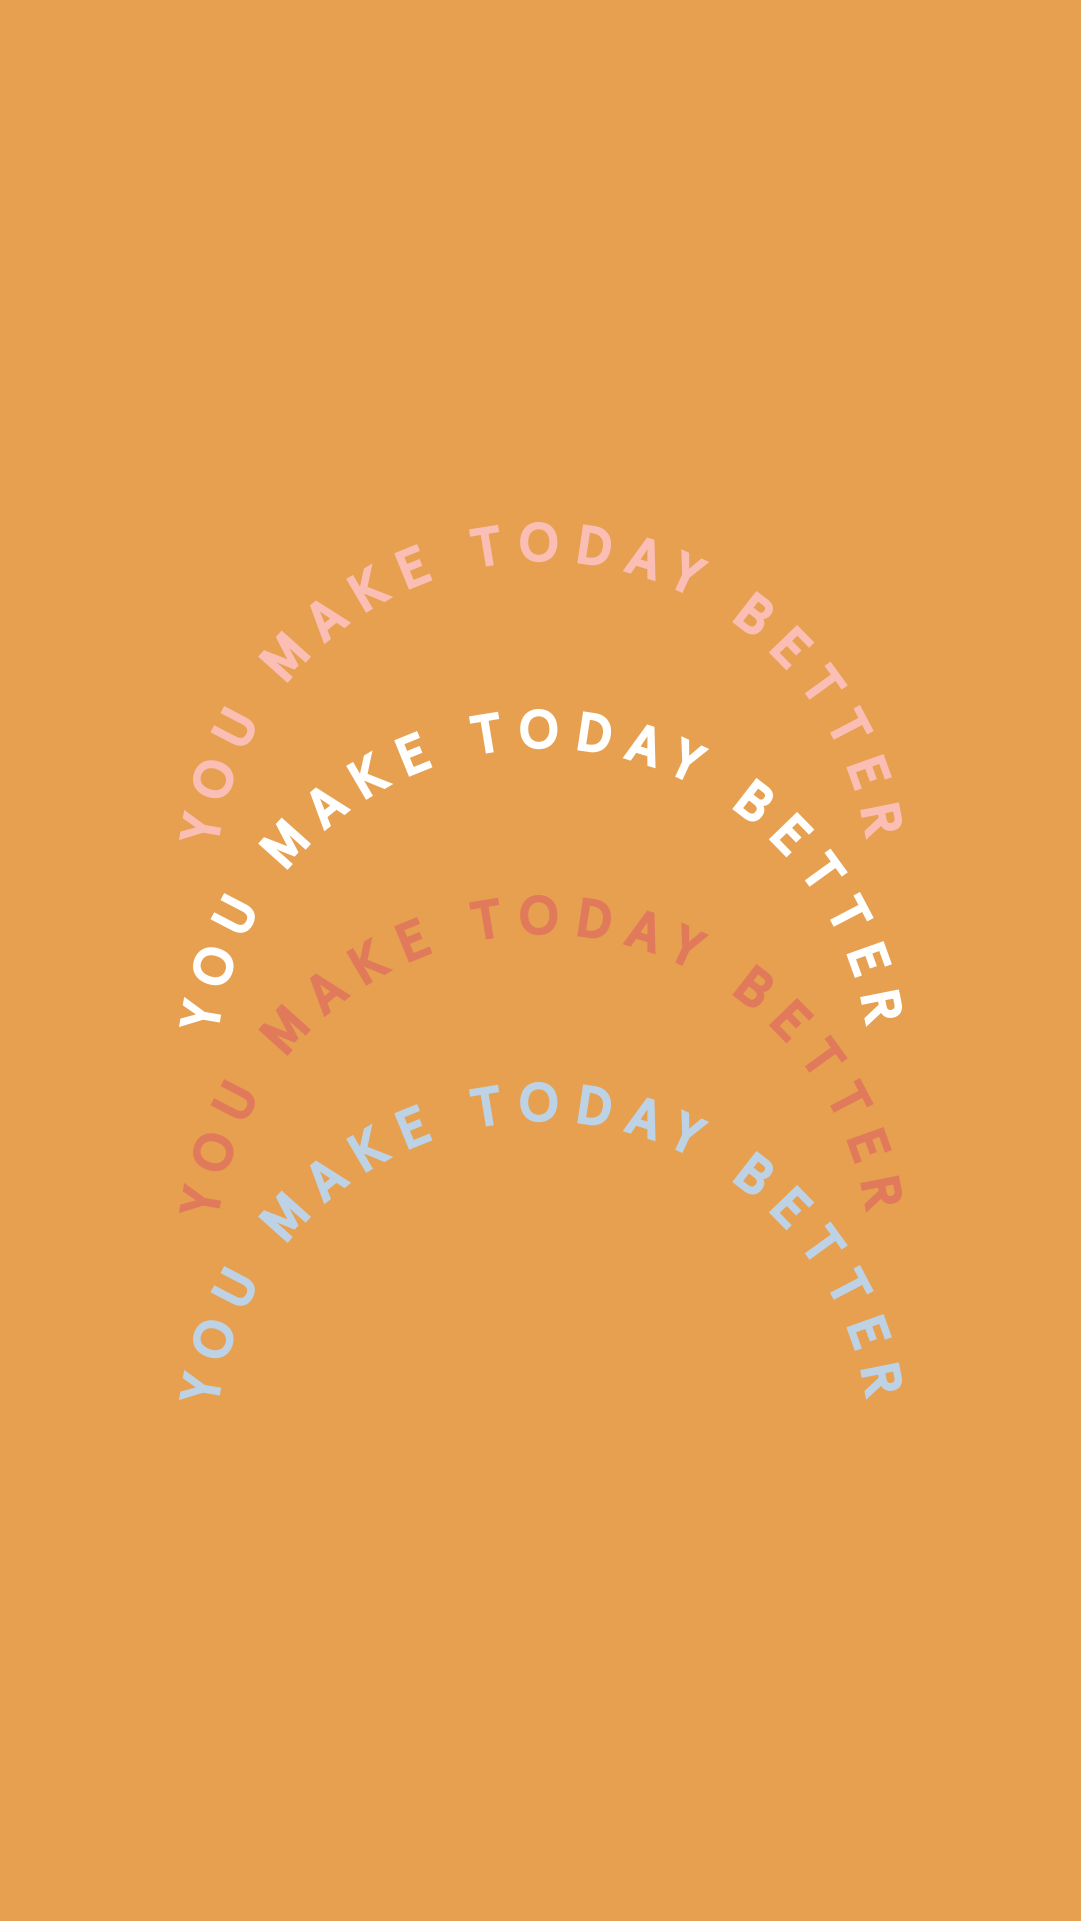 YOU MAKE TODAY BETTER PHONE WALLPAPER